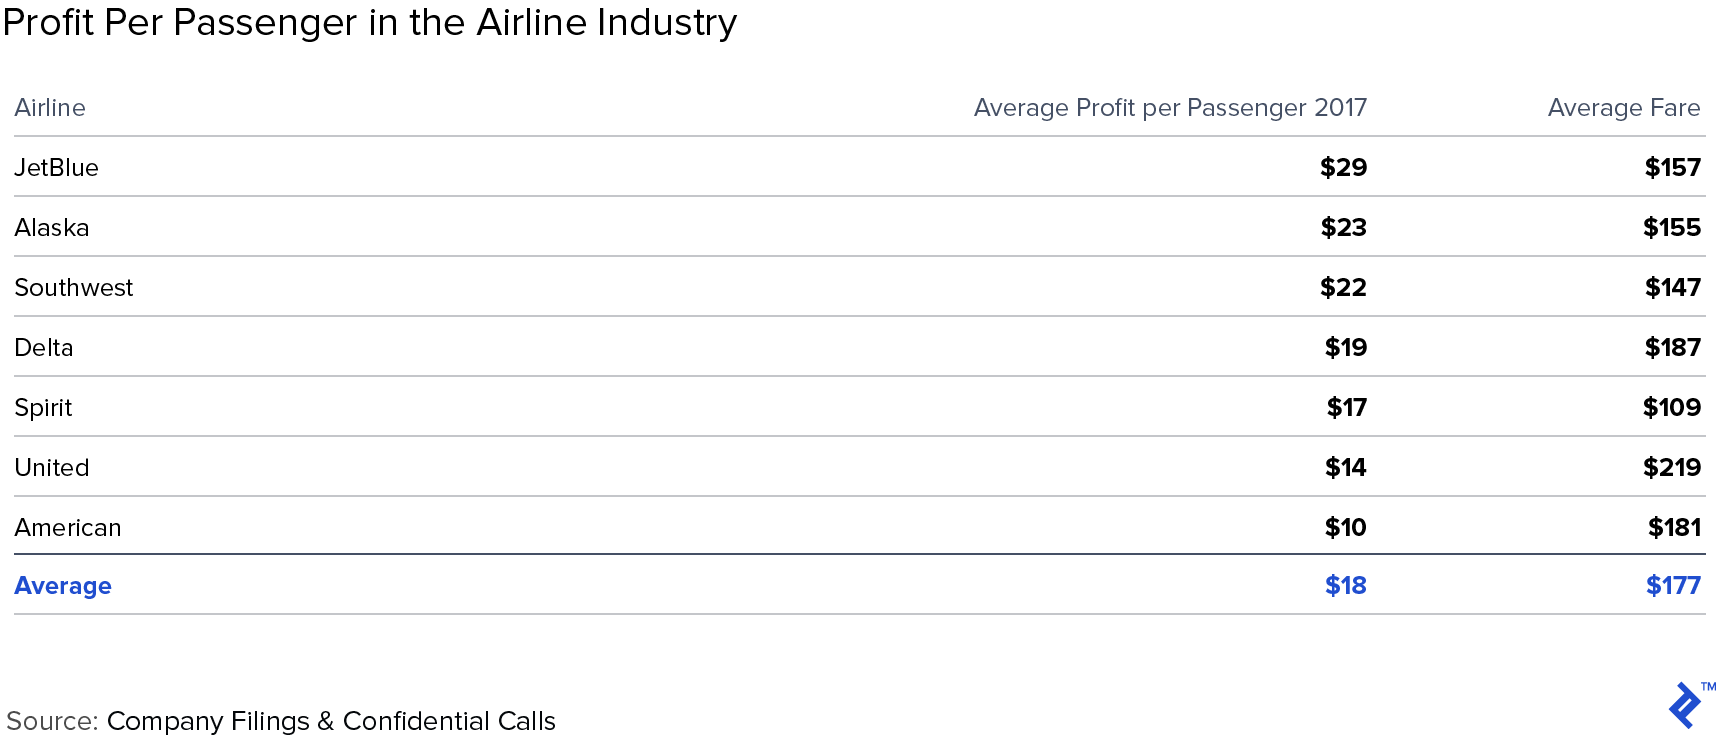 Spreadsheet: Profit per Passenger in the Airline Industry